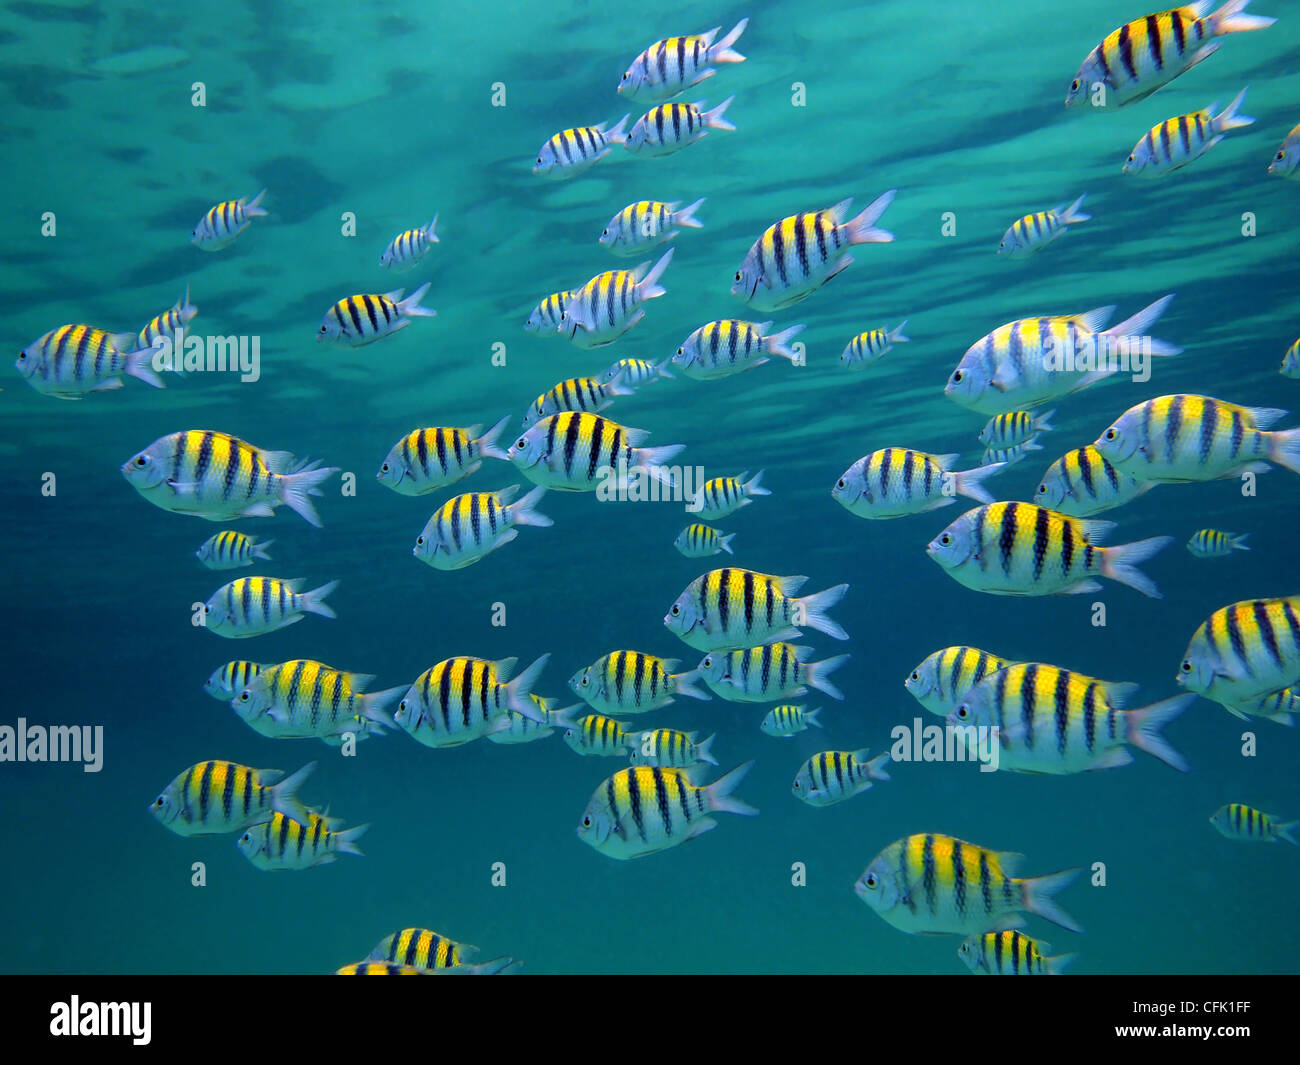 Sergeant-major fish school with water surface in background, underwater Caribbean sea - Stock Image